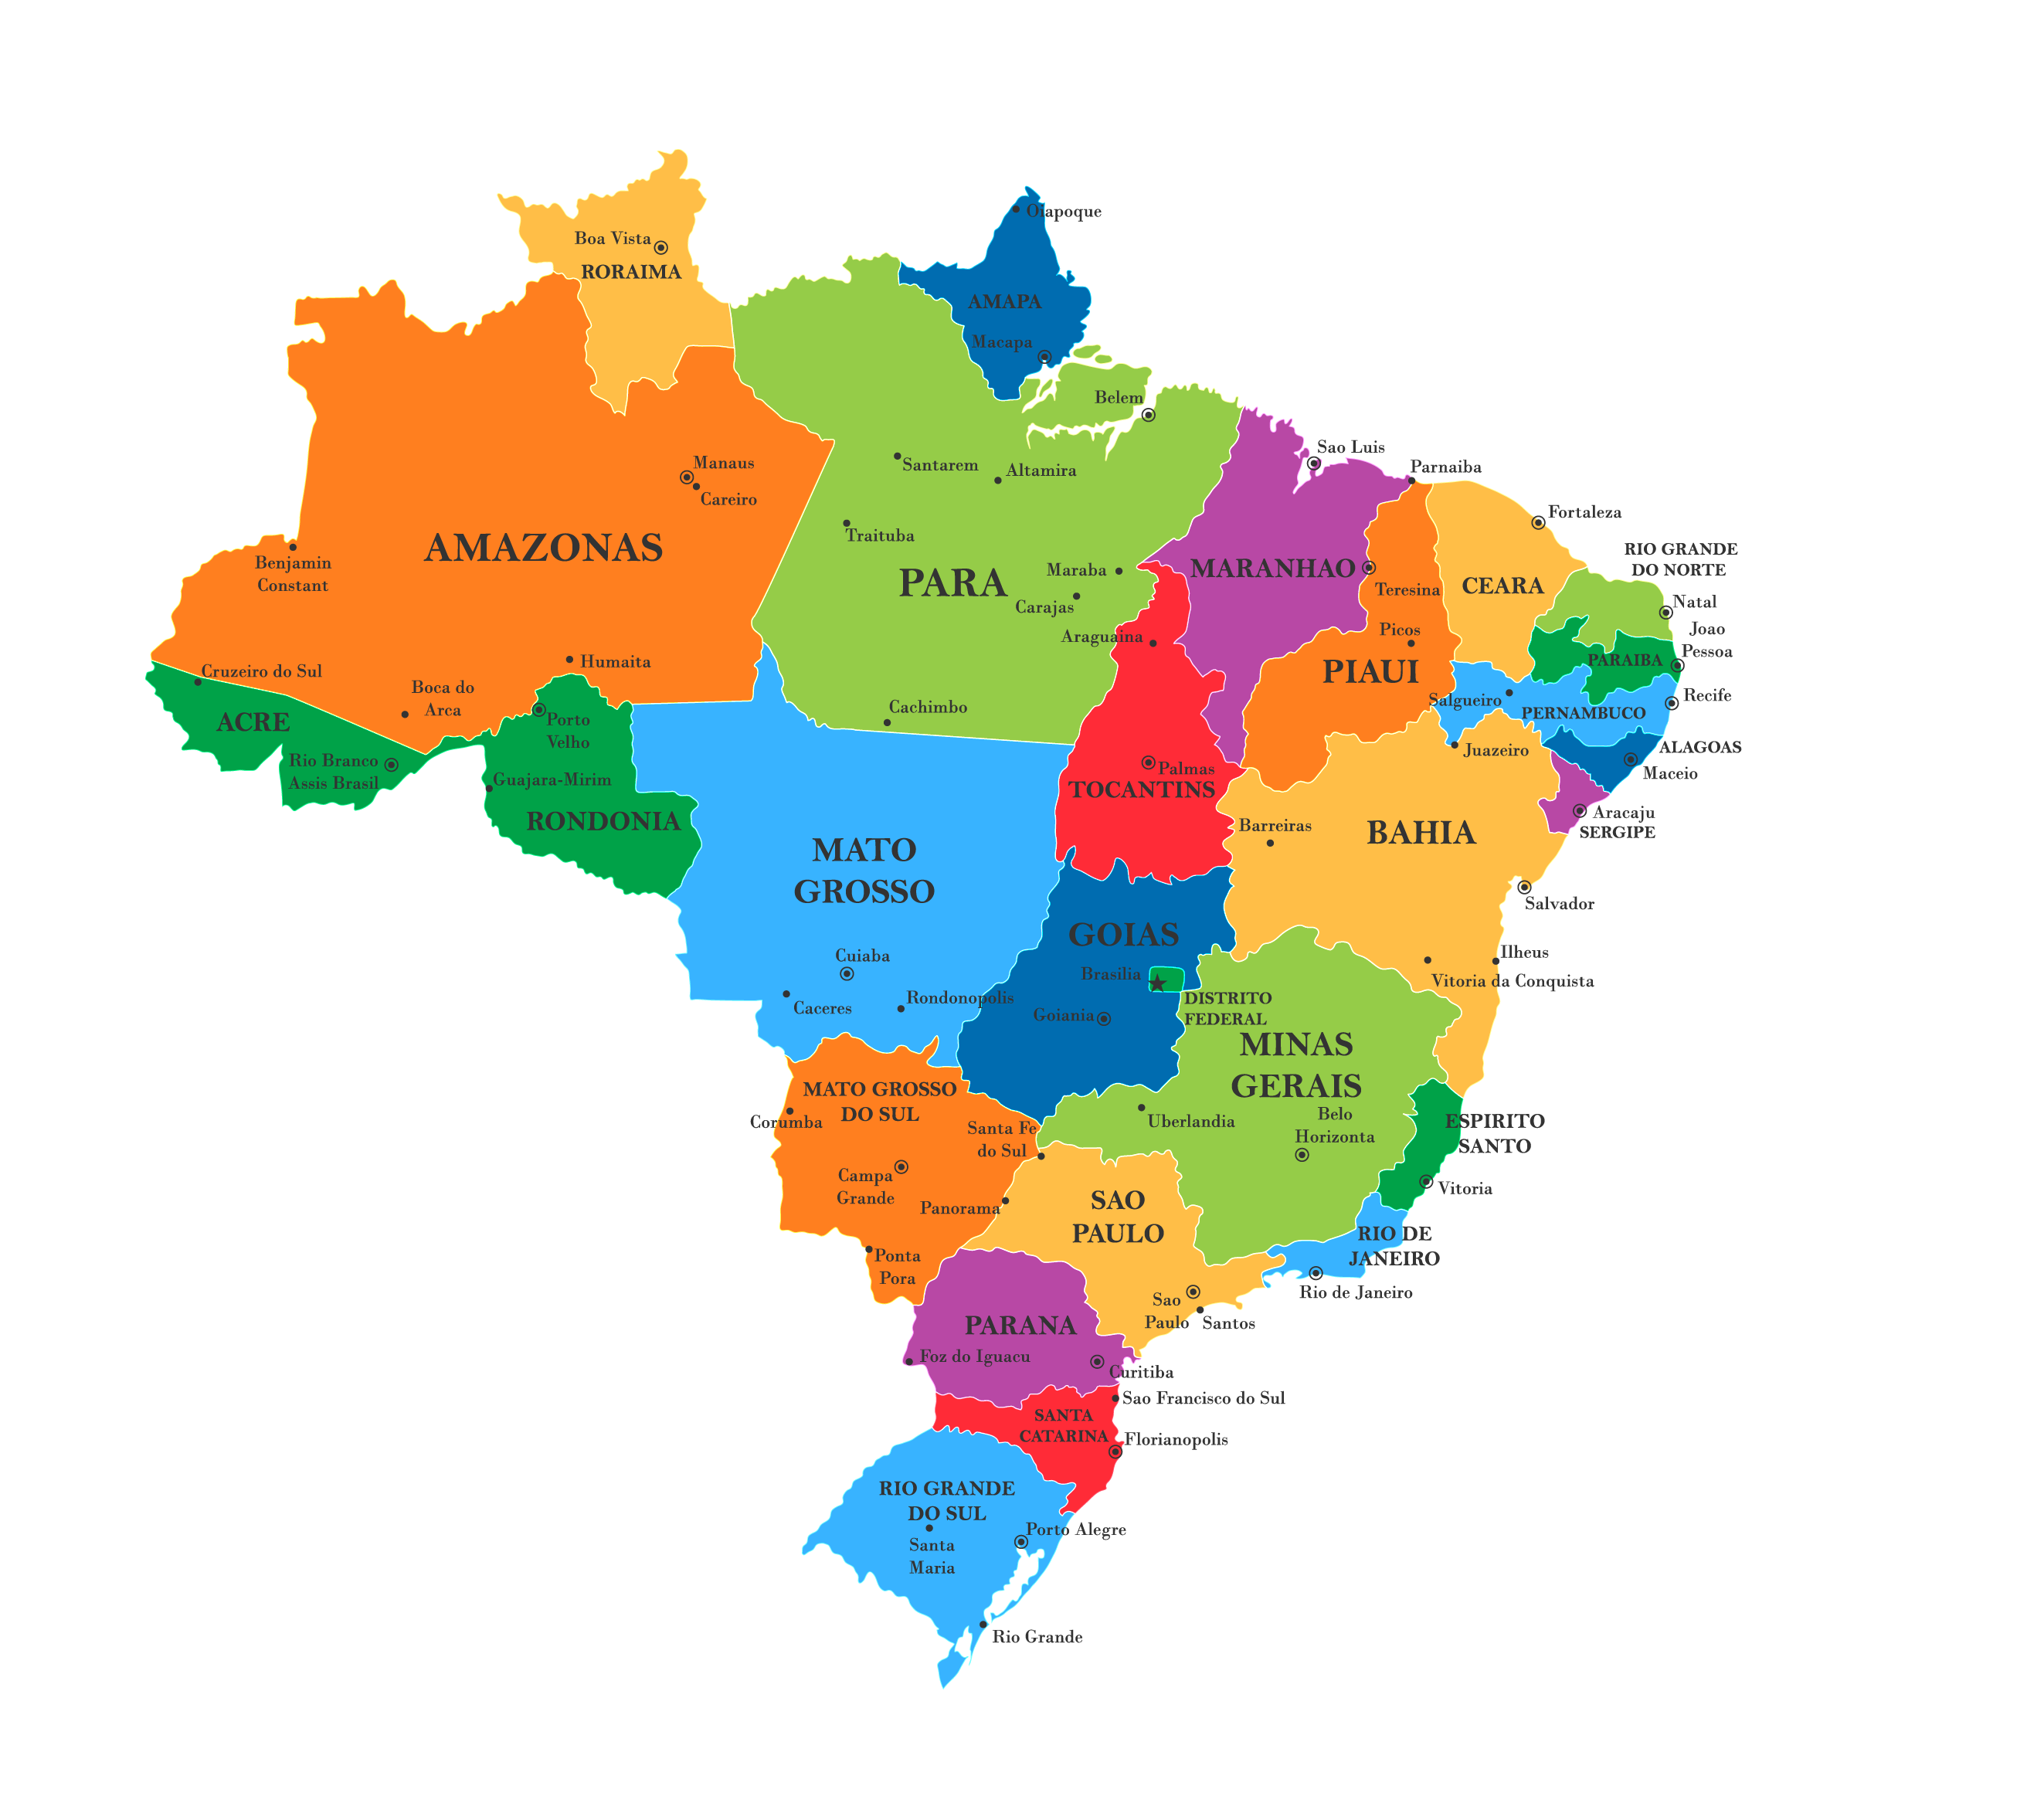 Political Map of Brazil showing its 26 states and 1 Federal District and the capital city of Brasilia